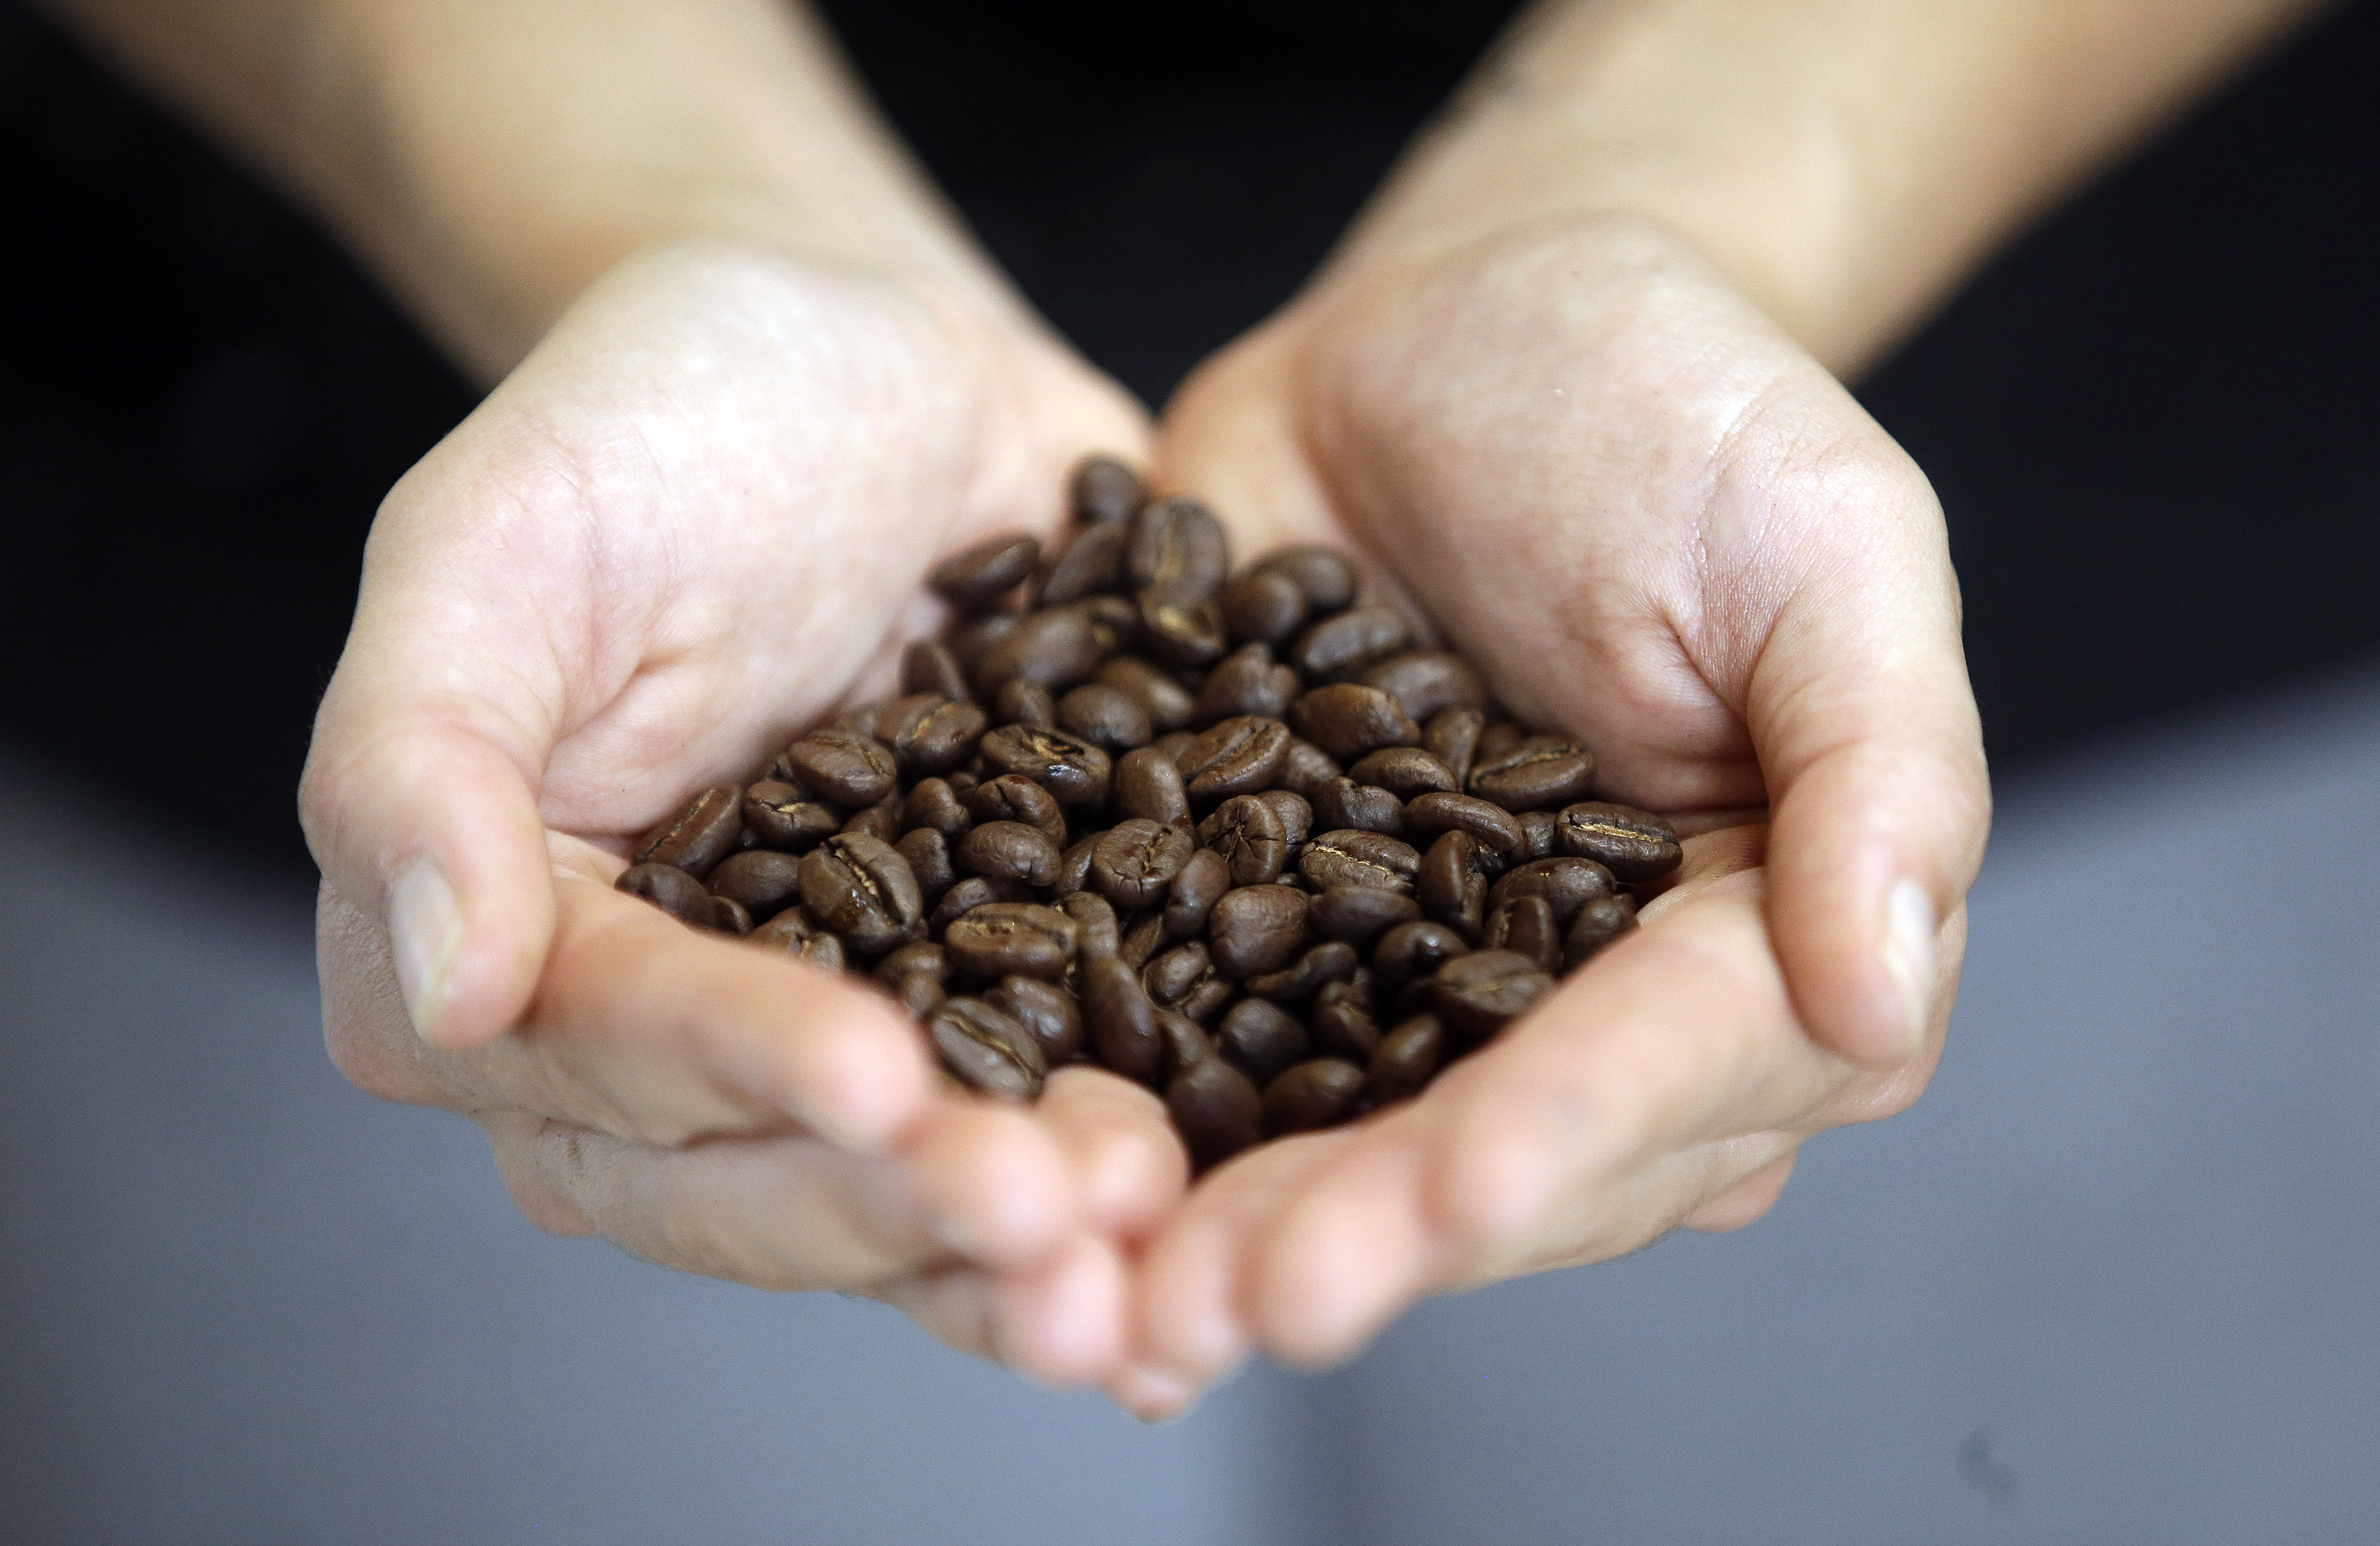 Study Finds Long-Term Effects When Teens Consume Caffeine